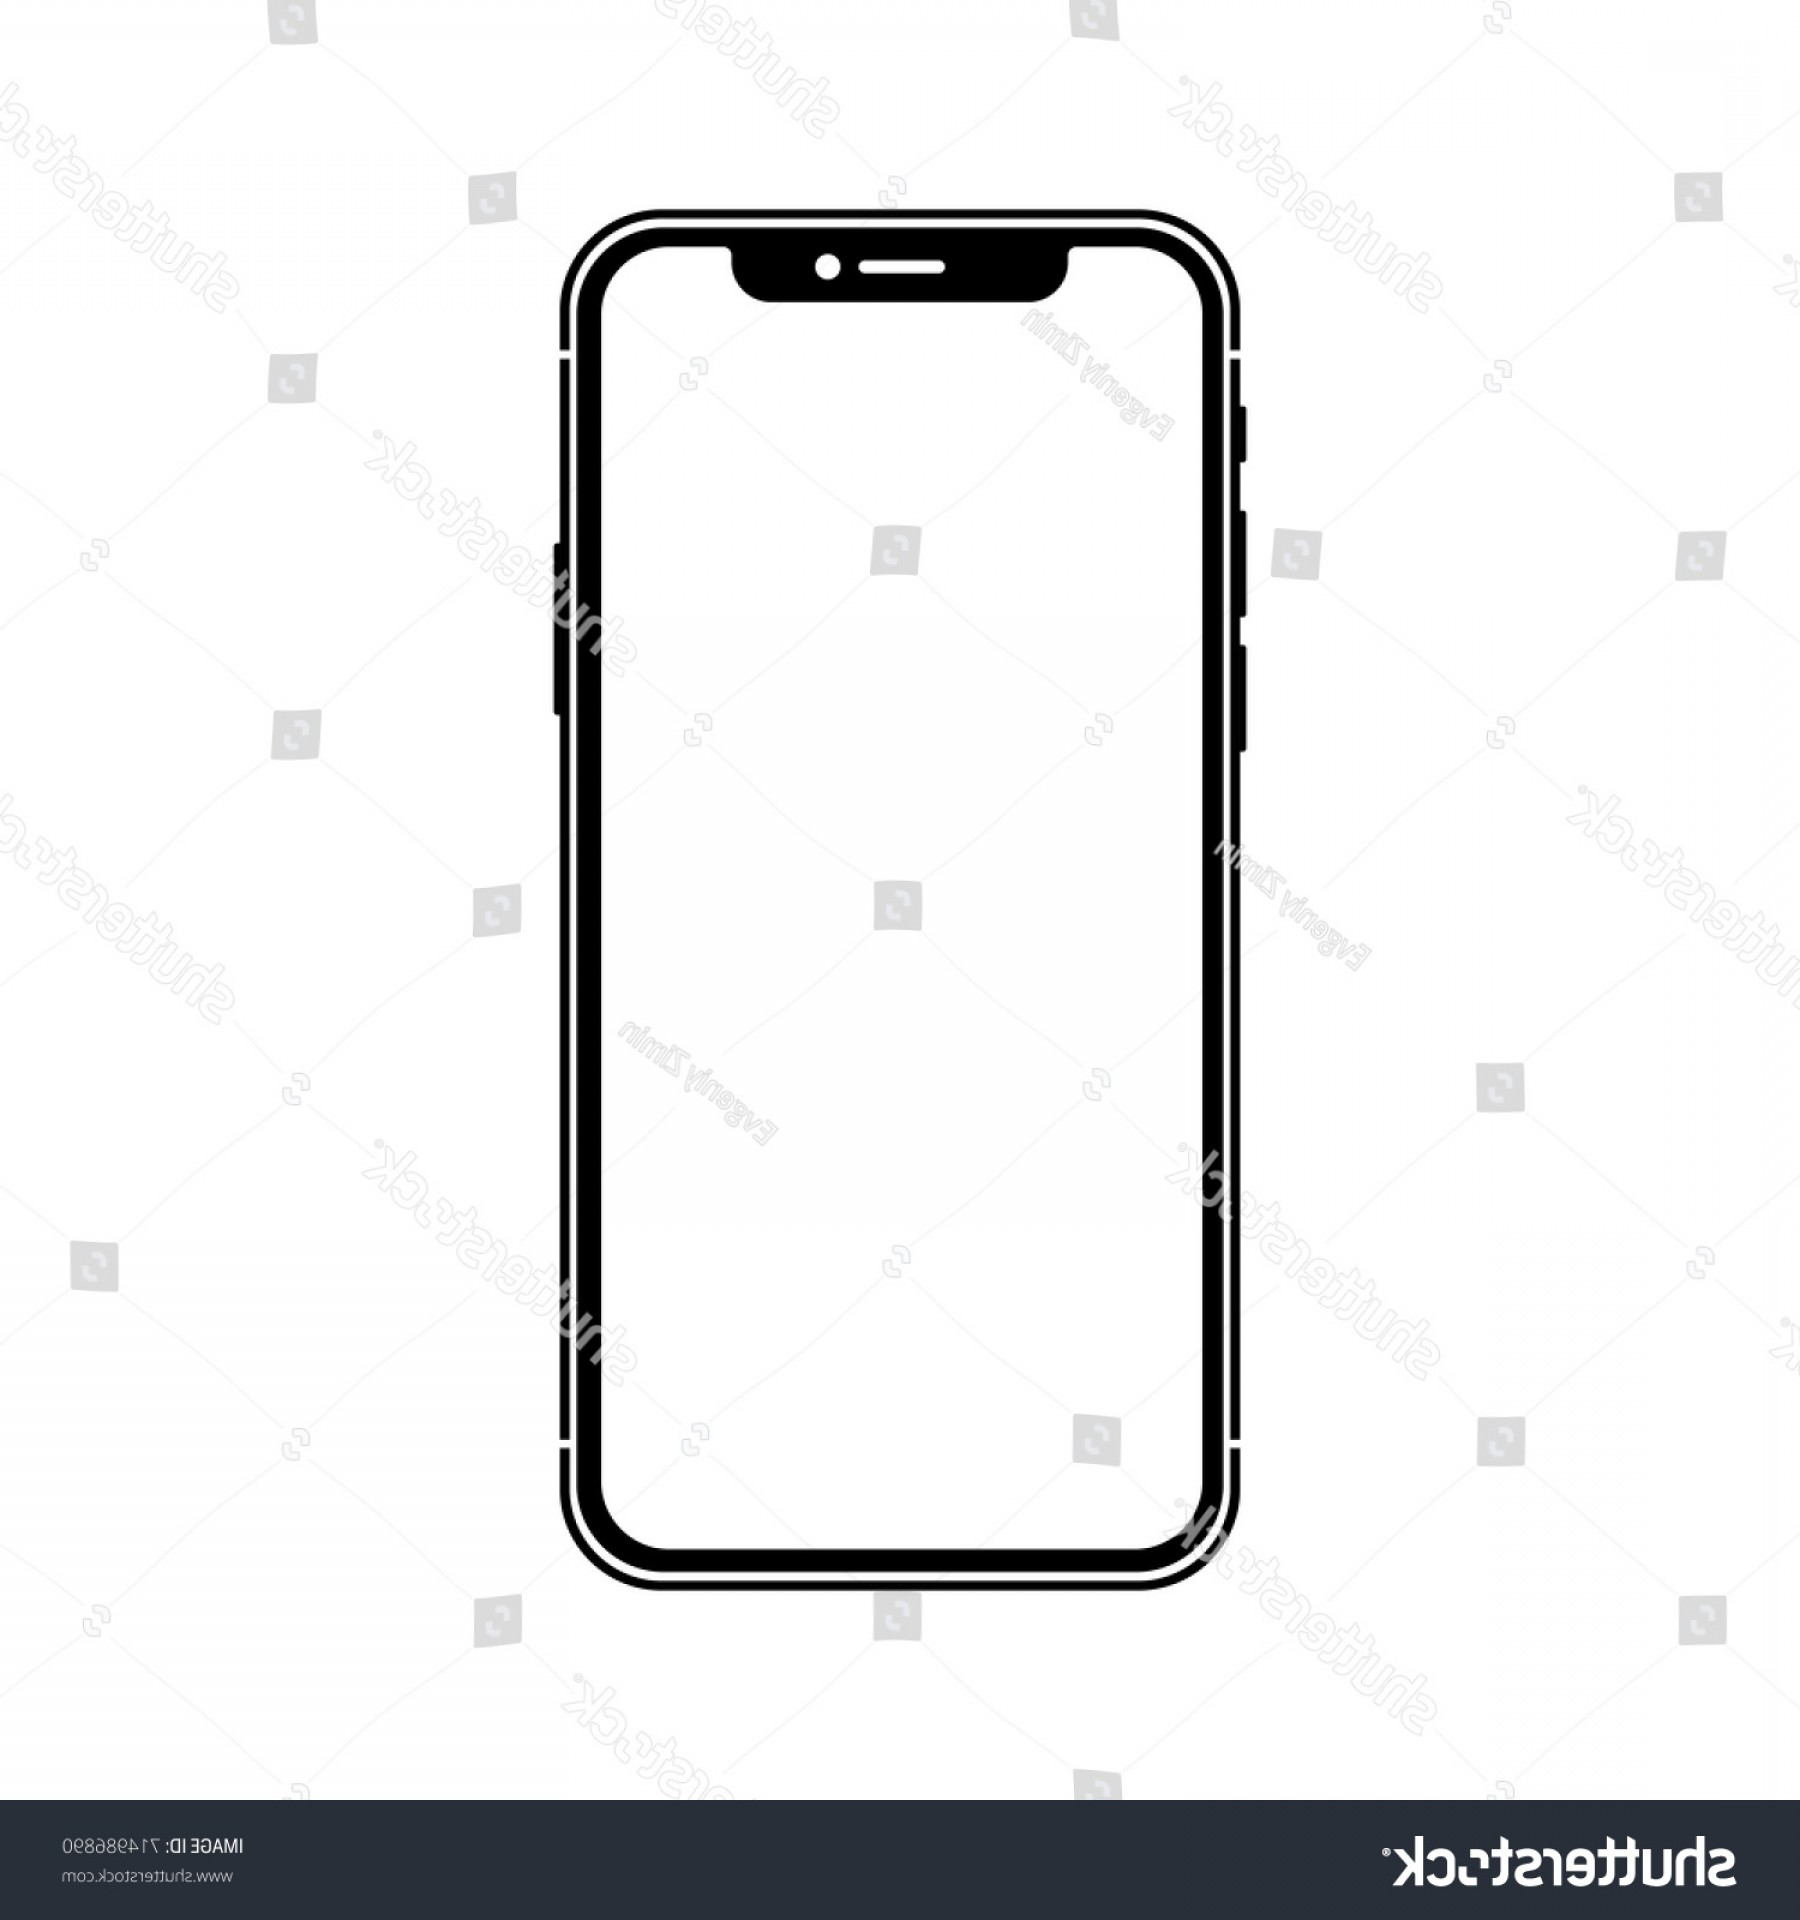 White IPhone Vector Png: Black Frameless Smartphone Iphone X Wireframe